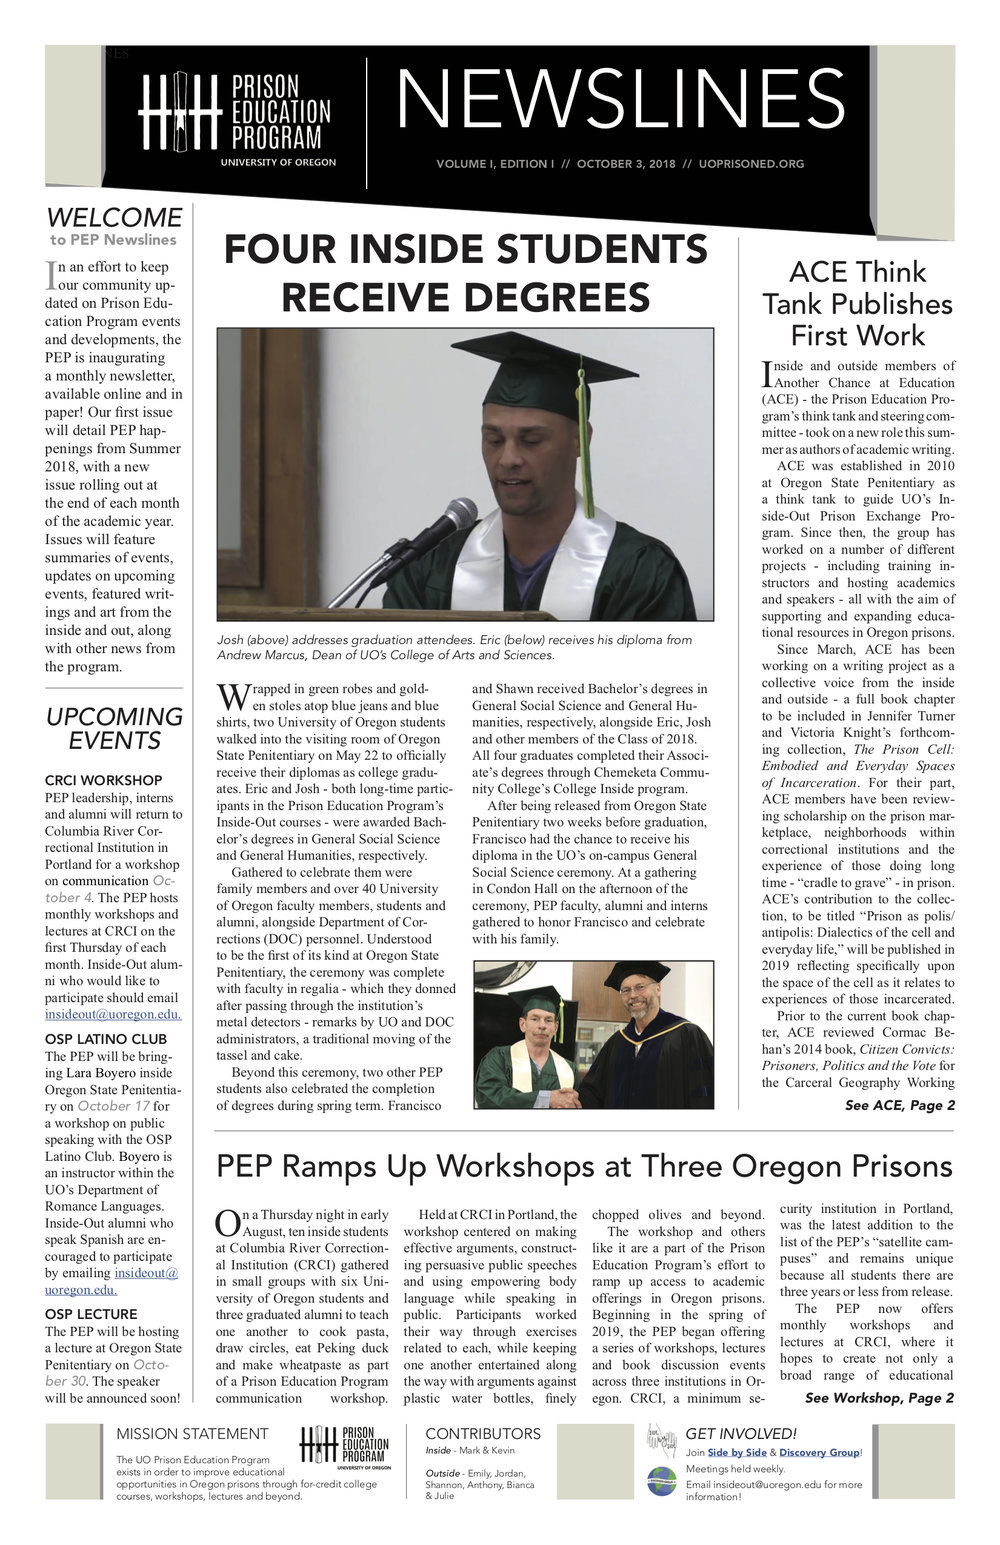 Prison Education Program Newslines v.1, ed.1.jpg